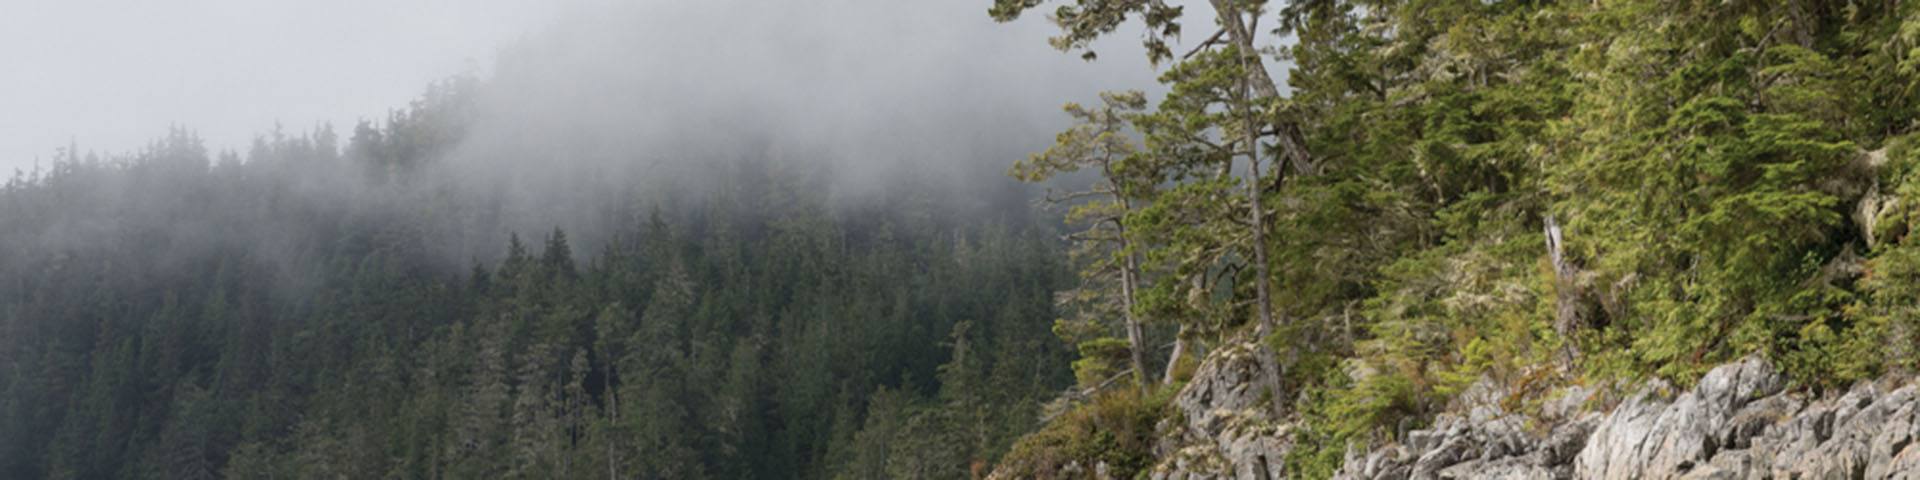 Great Bear Rainforest Expedition by Spirit of the West Adventures - Image 174